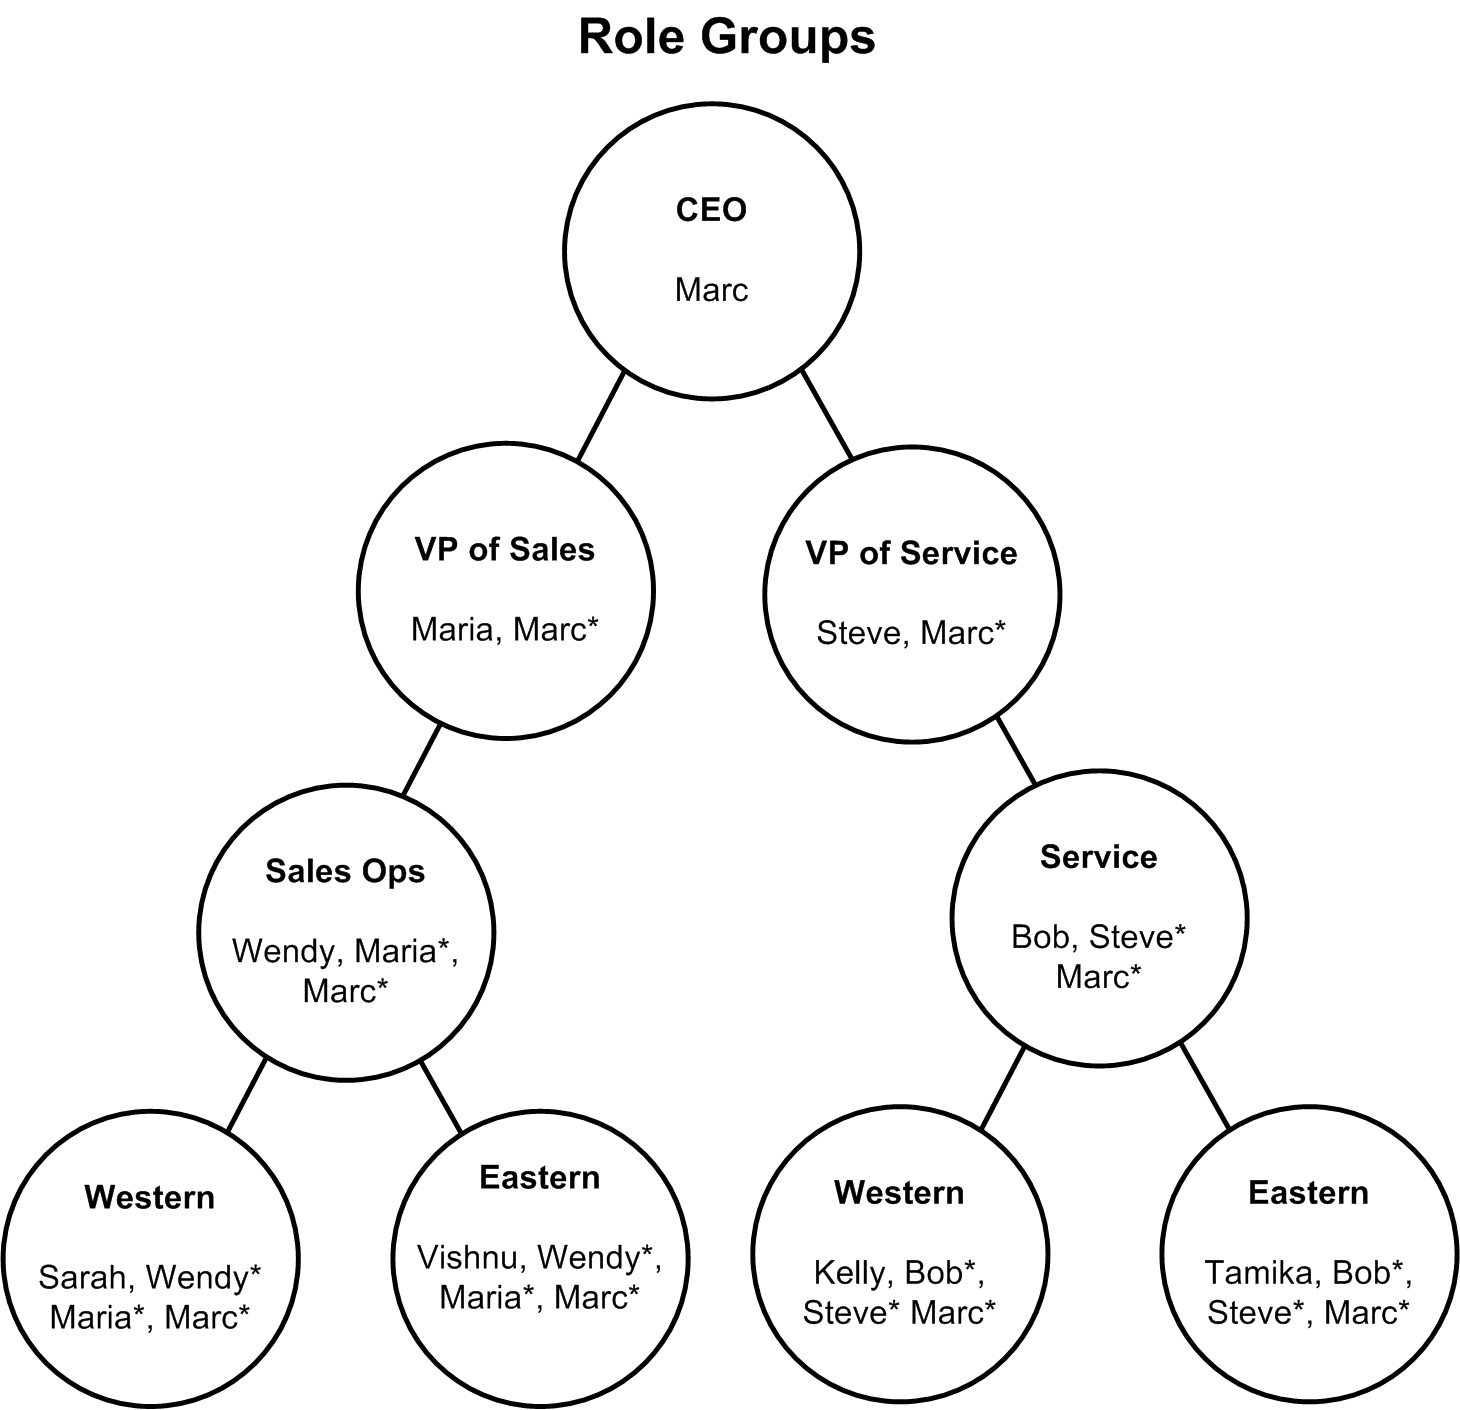 strengths based model and social role valorization srv Social role valorization (srv) is defined as the use of culturally valued means to enable, establish, enhance, maintain, and/or defend valued social roles for people at value risk (wolfensberger, 1985, 1998, 2000)the overall of goal of srv is to create social roles for devalued populations that enhance their image and personal competencies.